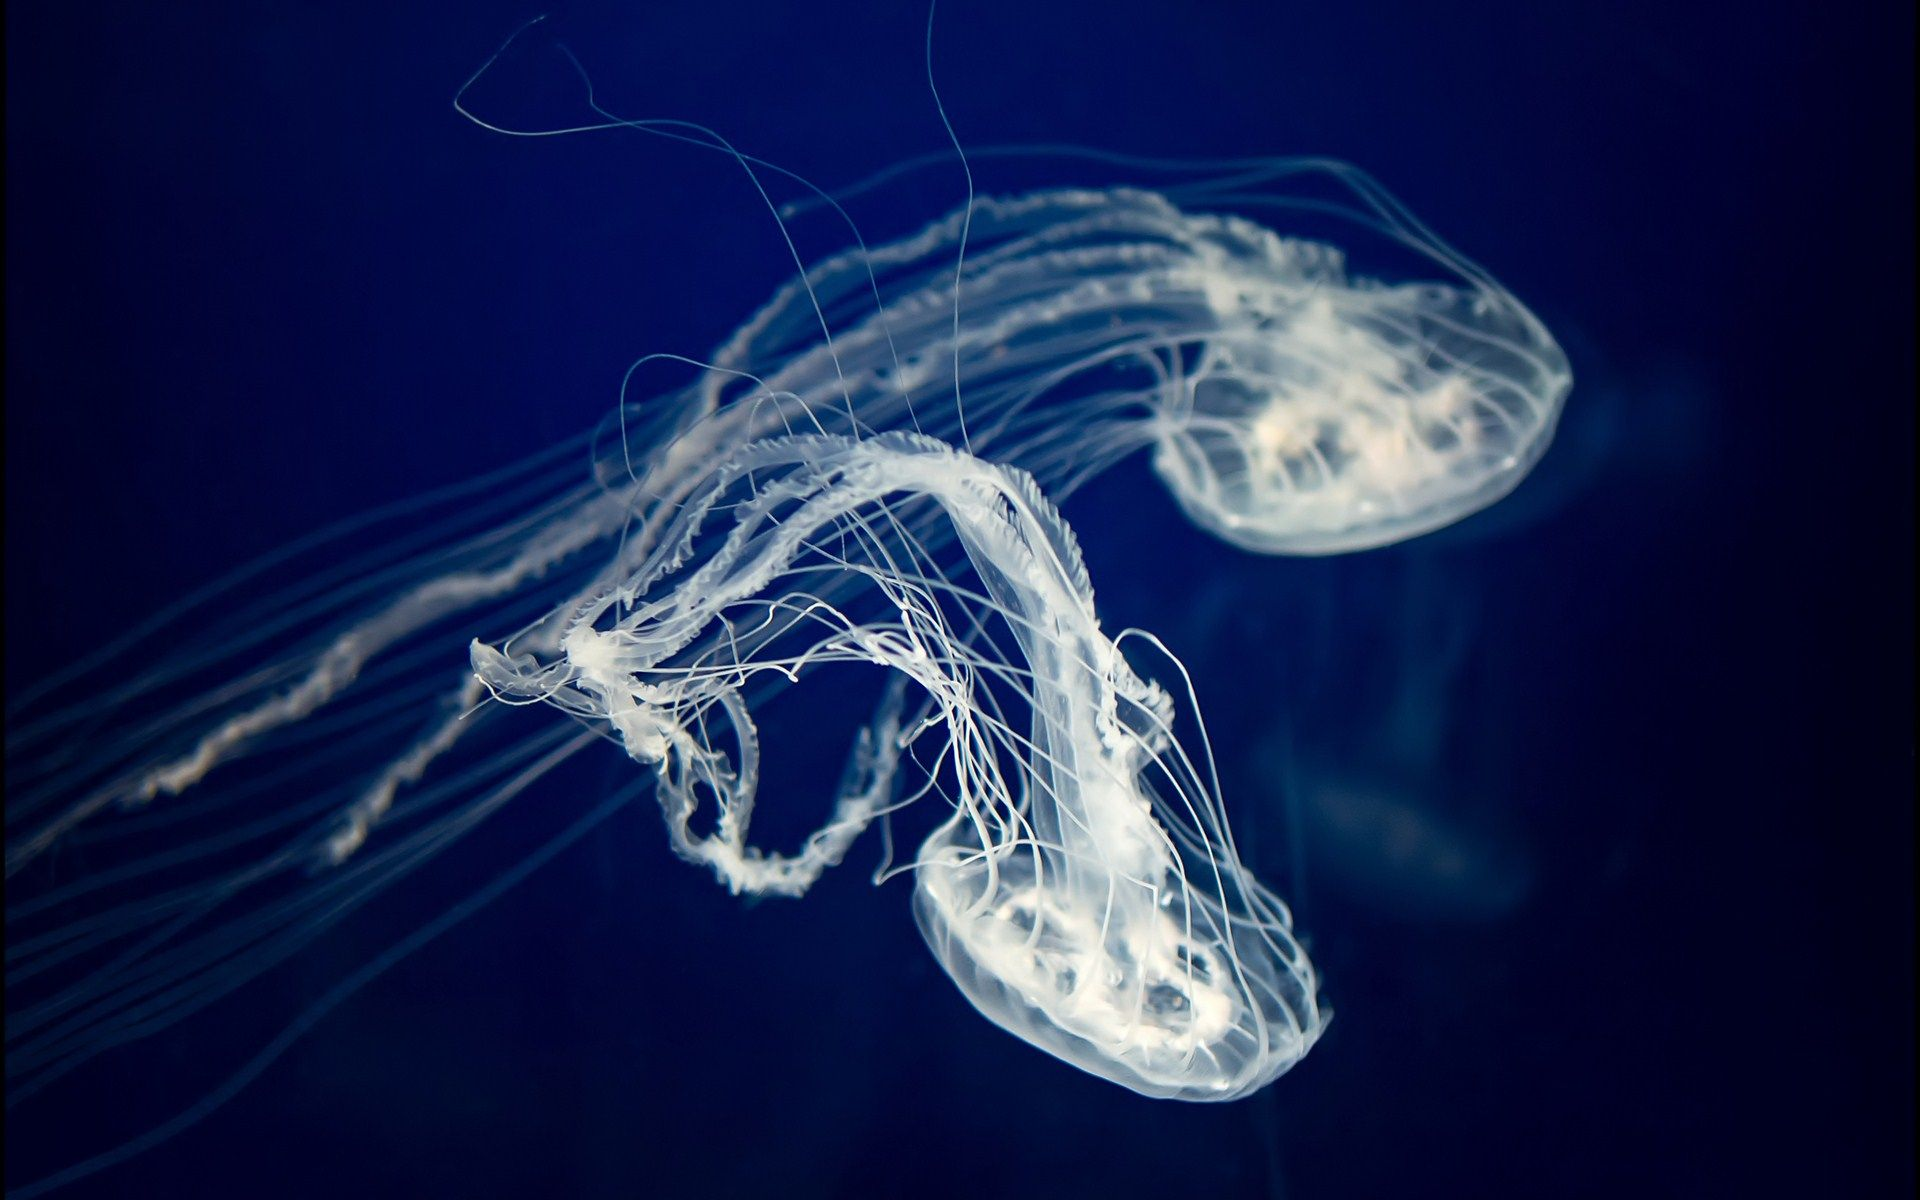 jellyfish desktop wallpaper